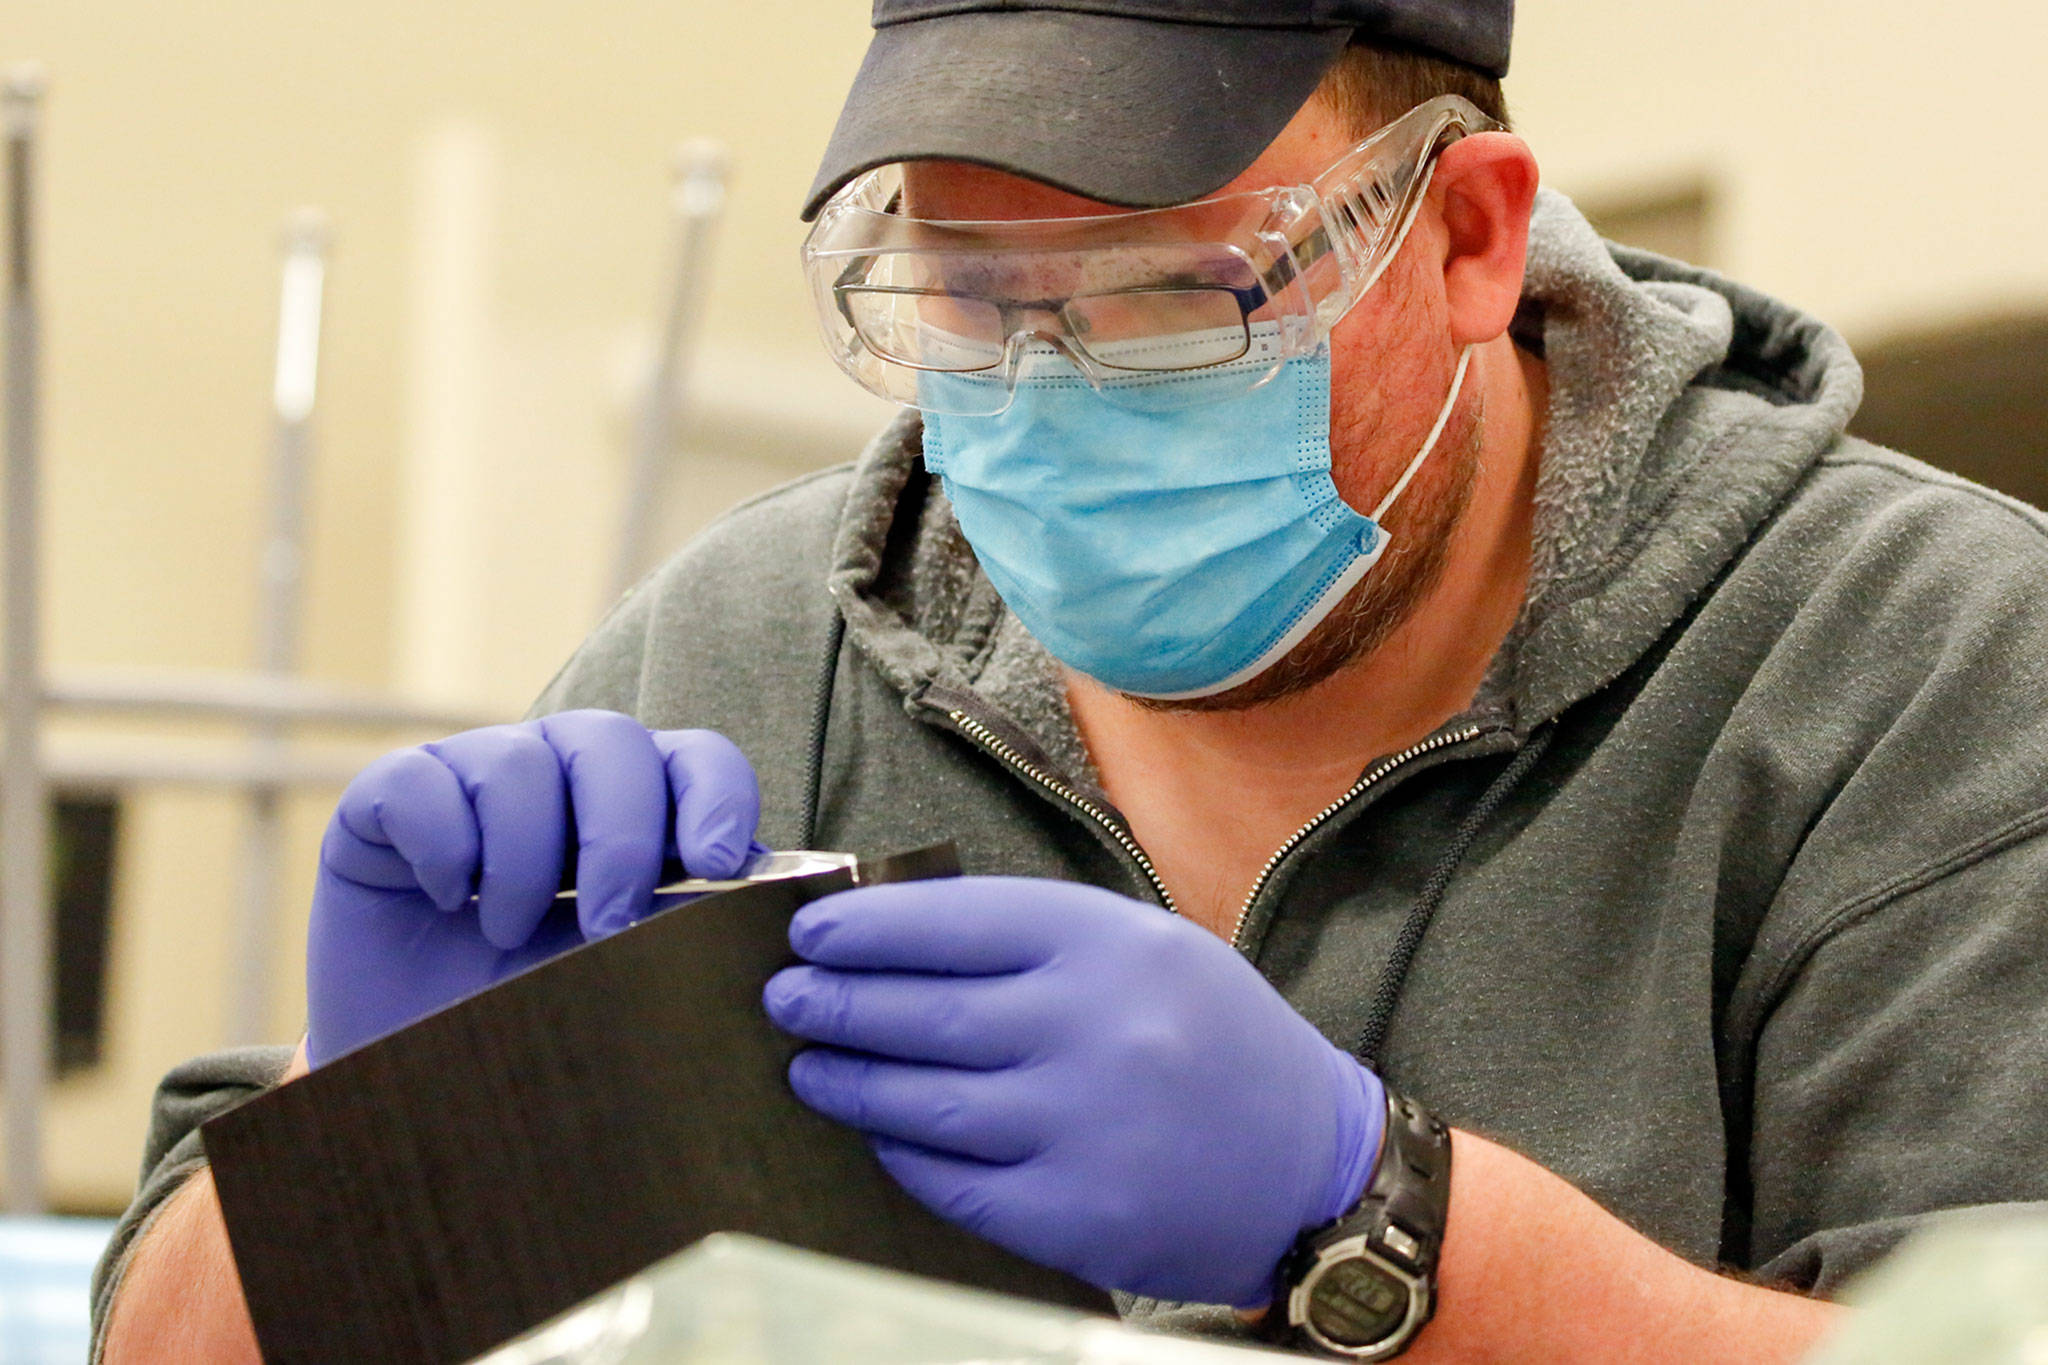 Brendan Fellows works on an assignment at the Advanced Manufacturing Training & Education Center at Everett Community College. (Kevin Clark / The Herald)